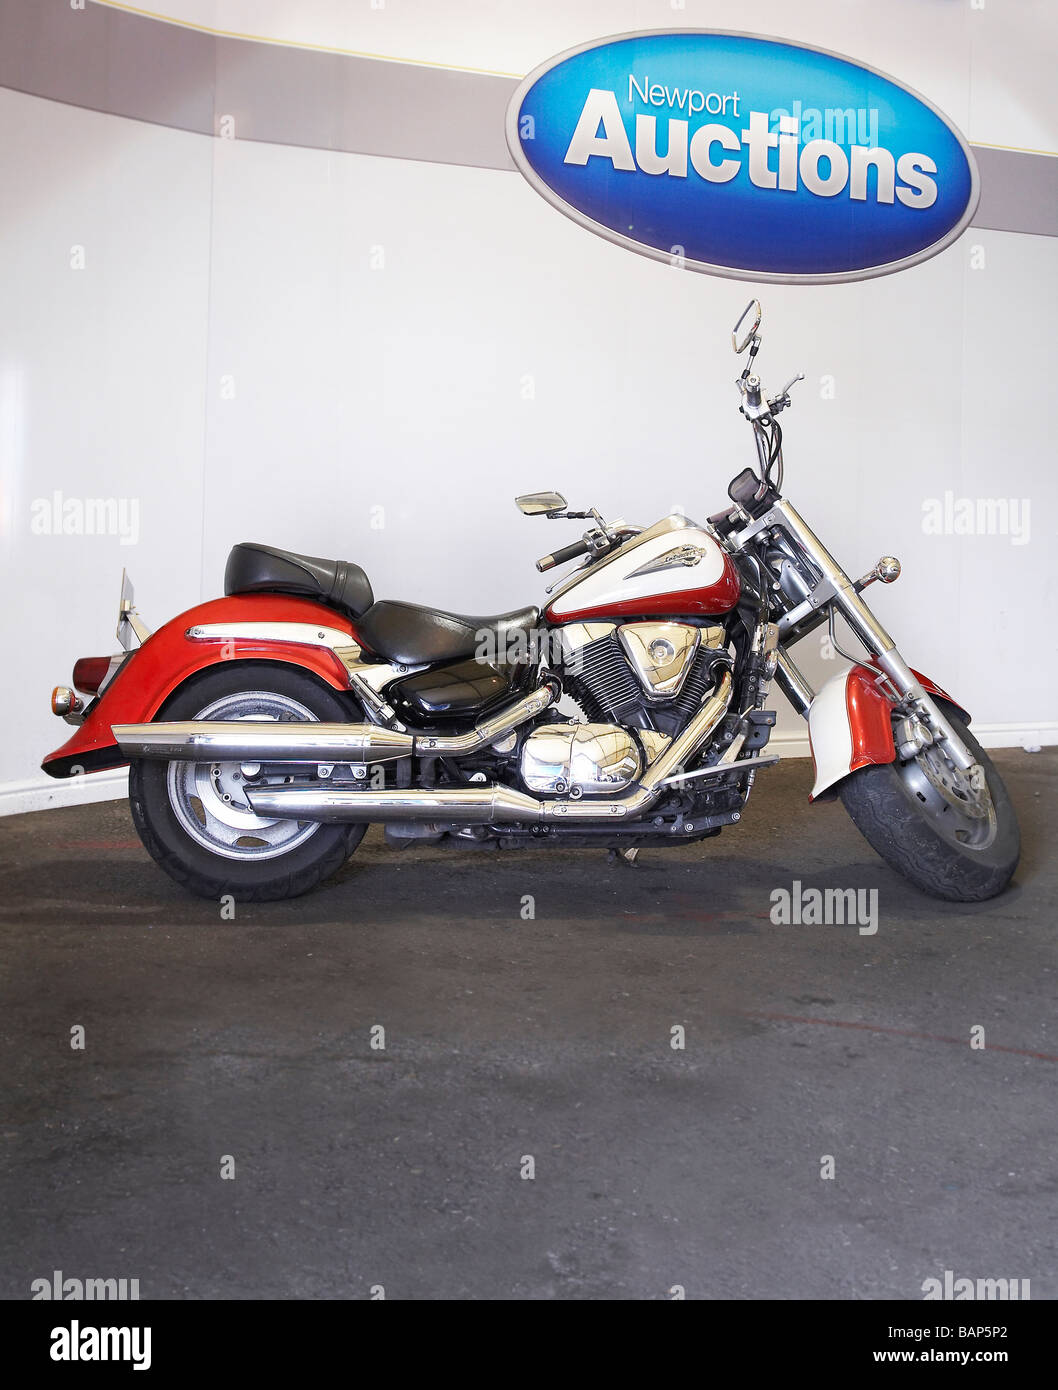 Suzuki Intruder 1500 LC for sale at Newport Auctions - Stock Image